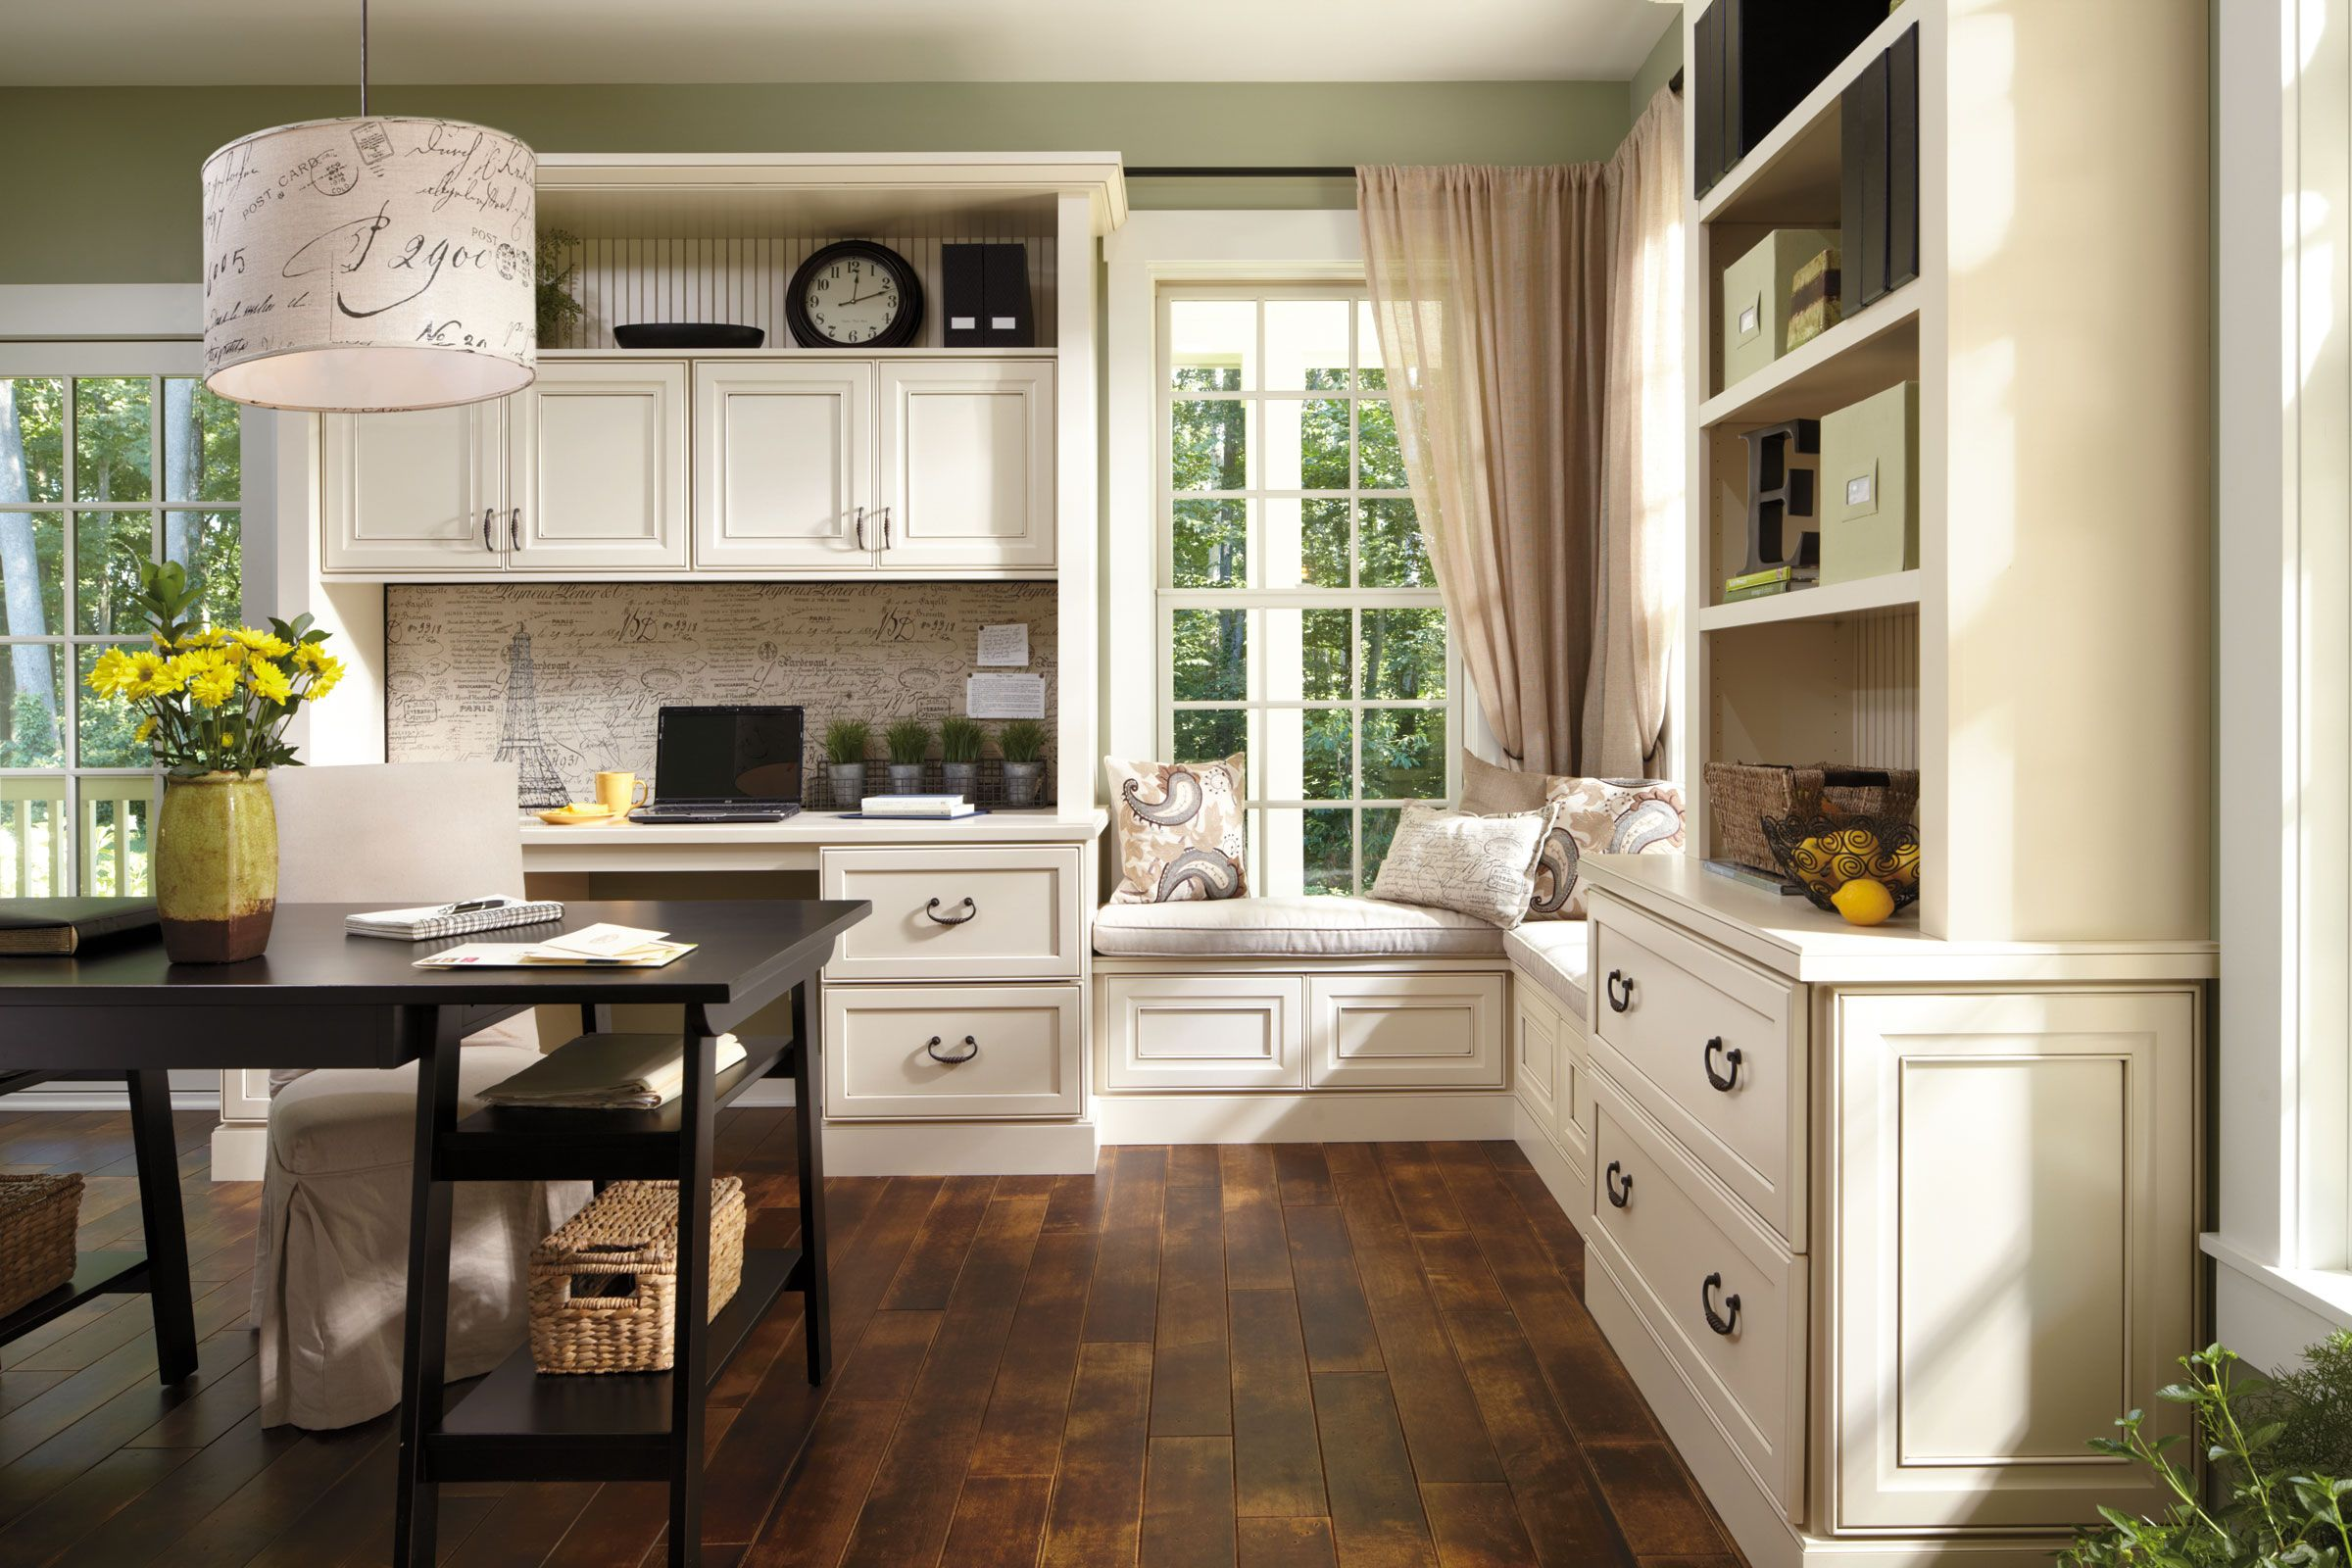 Premium Cabinets Bathroom Kitchen Cabinetry Decora Kitchen Design Kitchen Cabinet Styles Stylish Kitchen